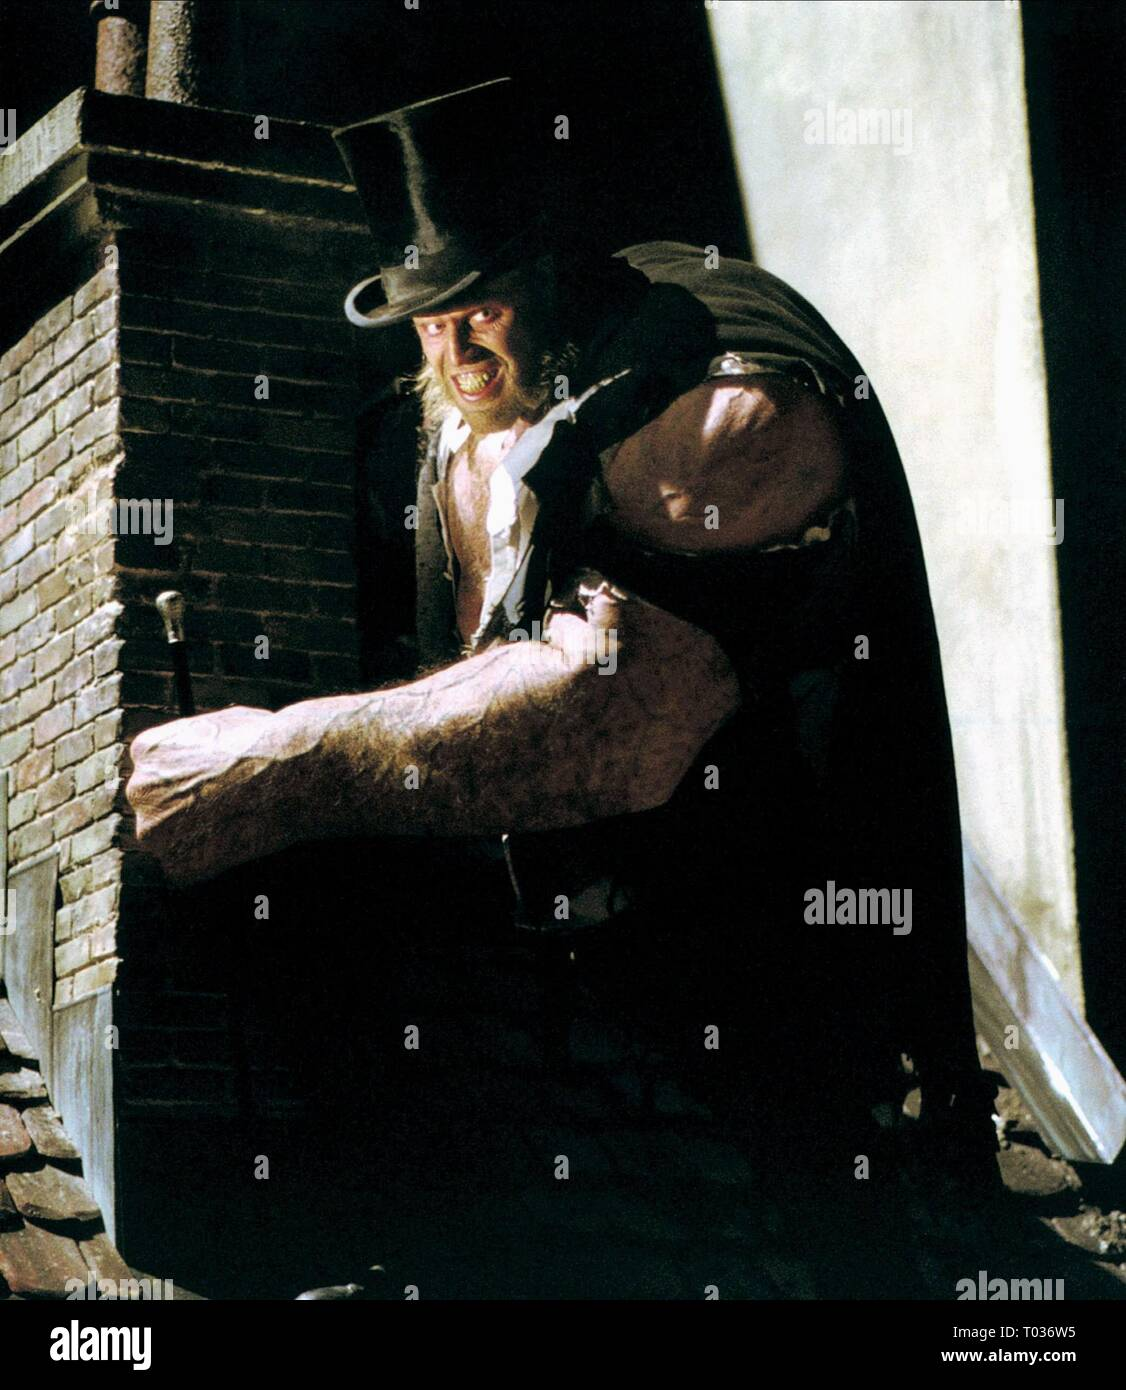 JASON FLEMYNG, THE LEAGUE OF EXTRAORDINARY GENTLEMEN, 2003 Stock Photo